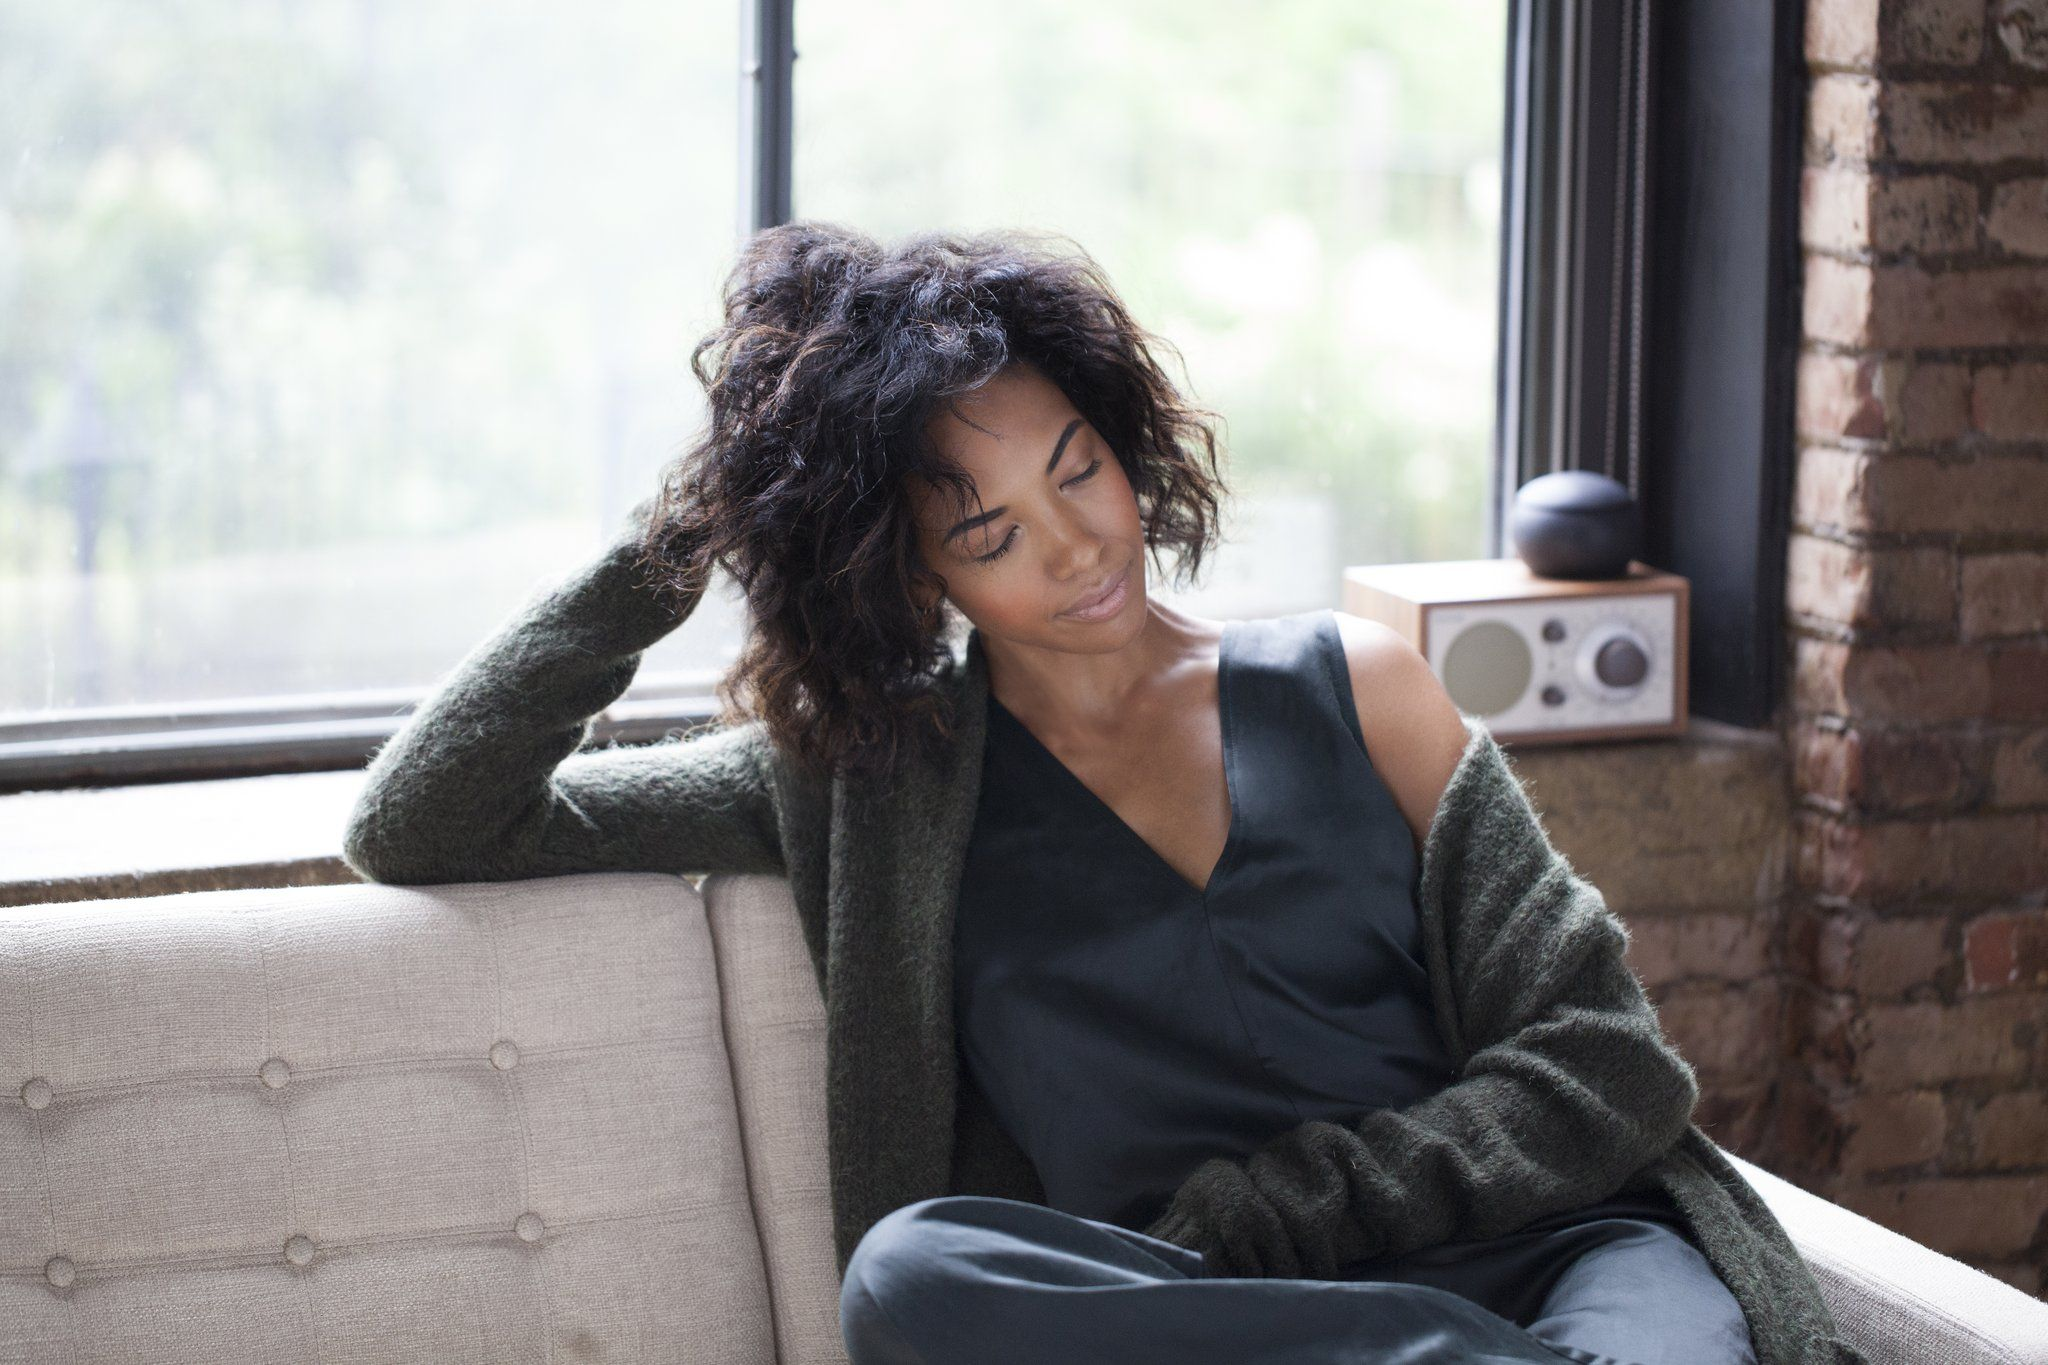 Physical Symptoms and Signs of Emotional Stress and Anxiety   POPSUGAR Fitness